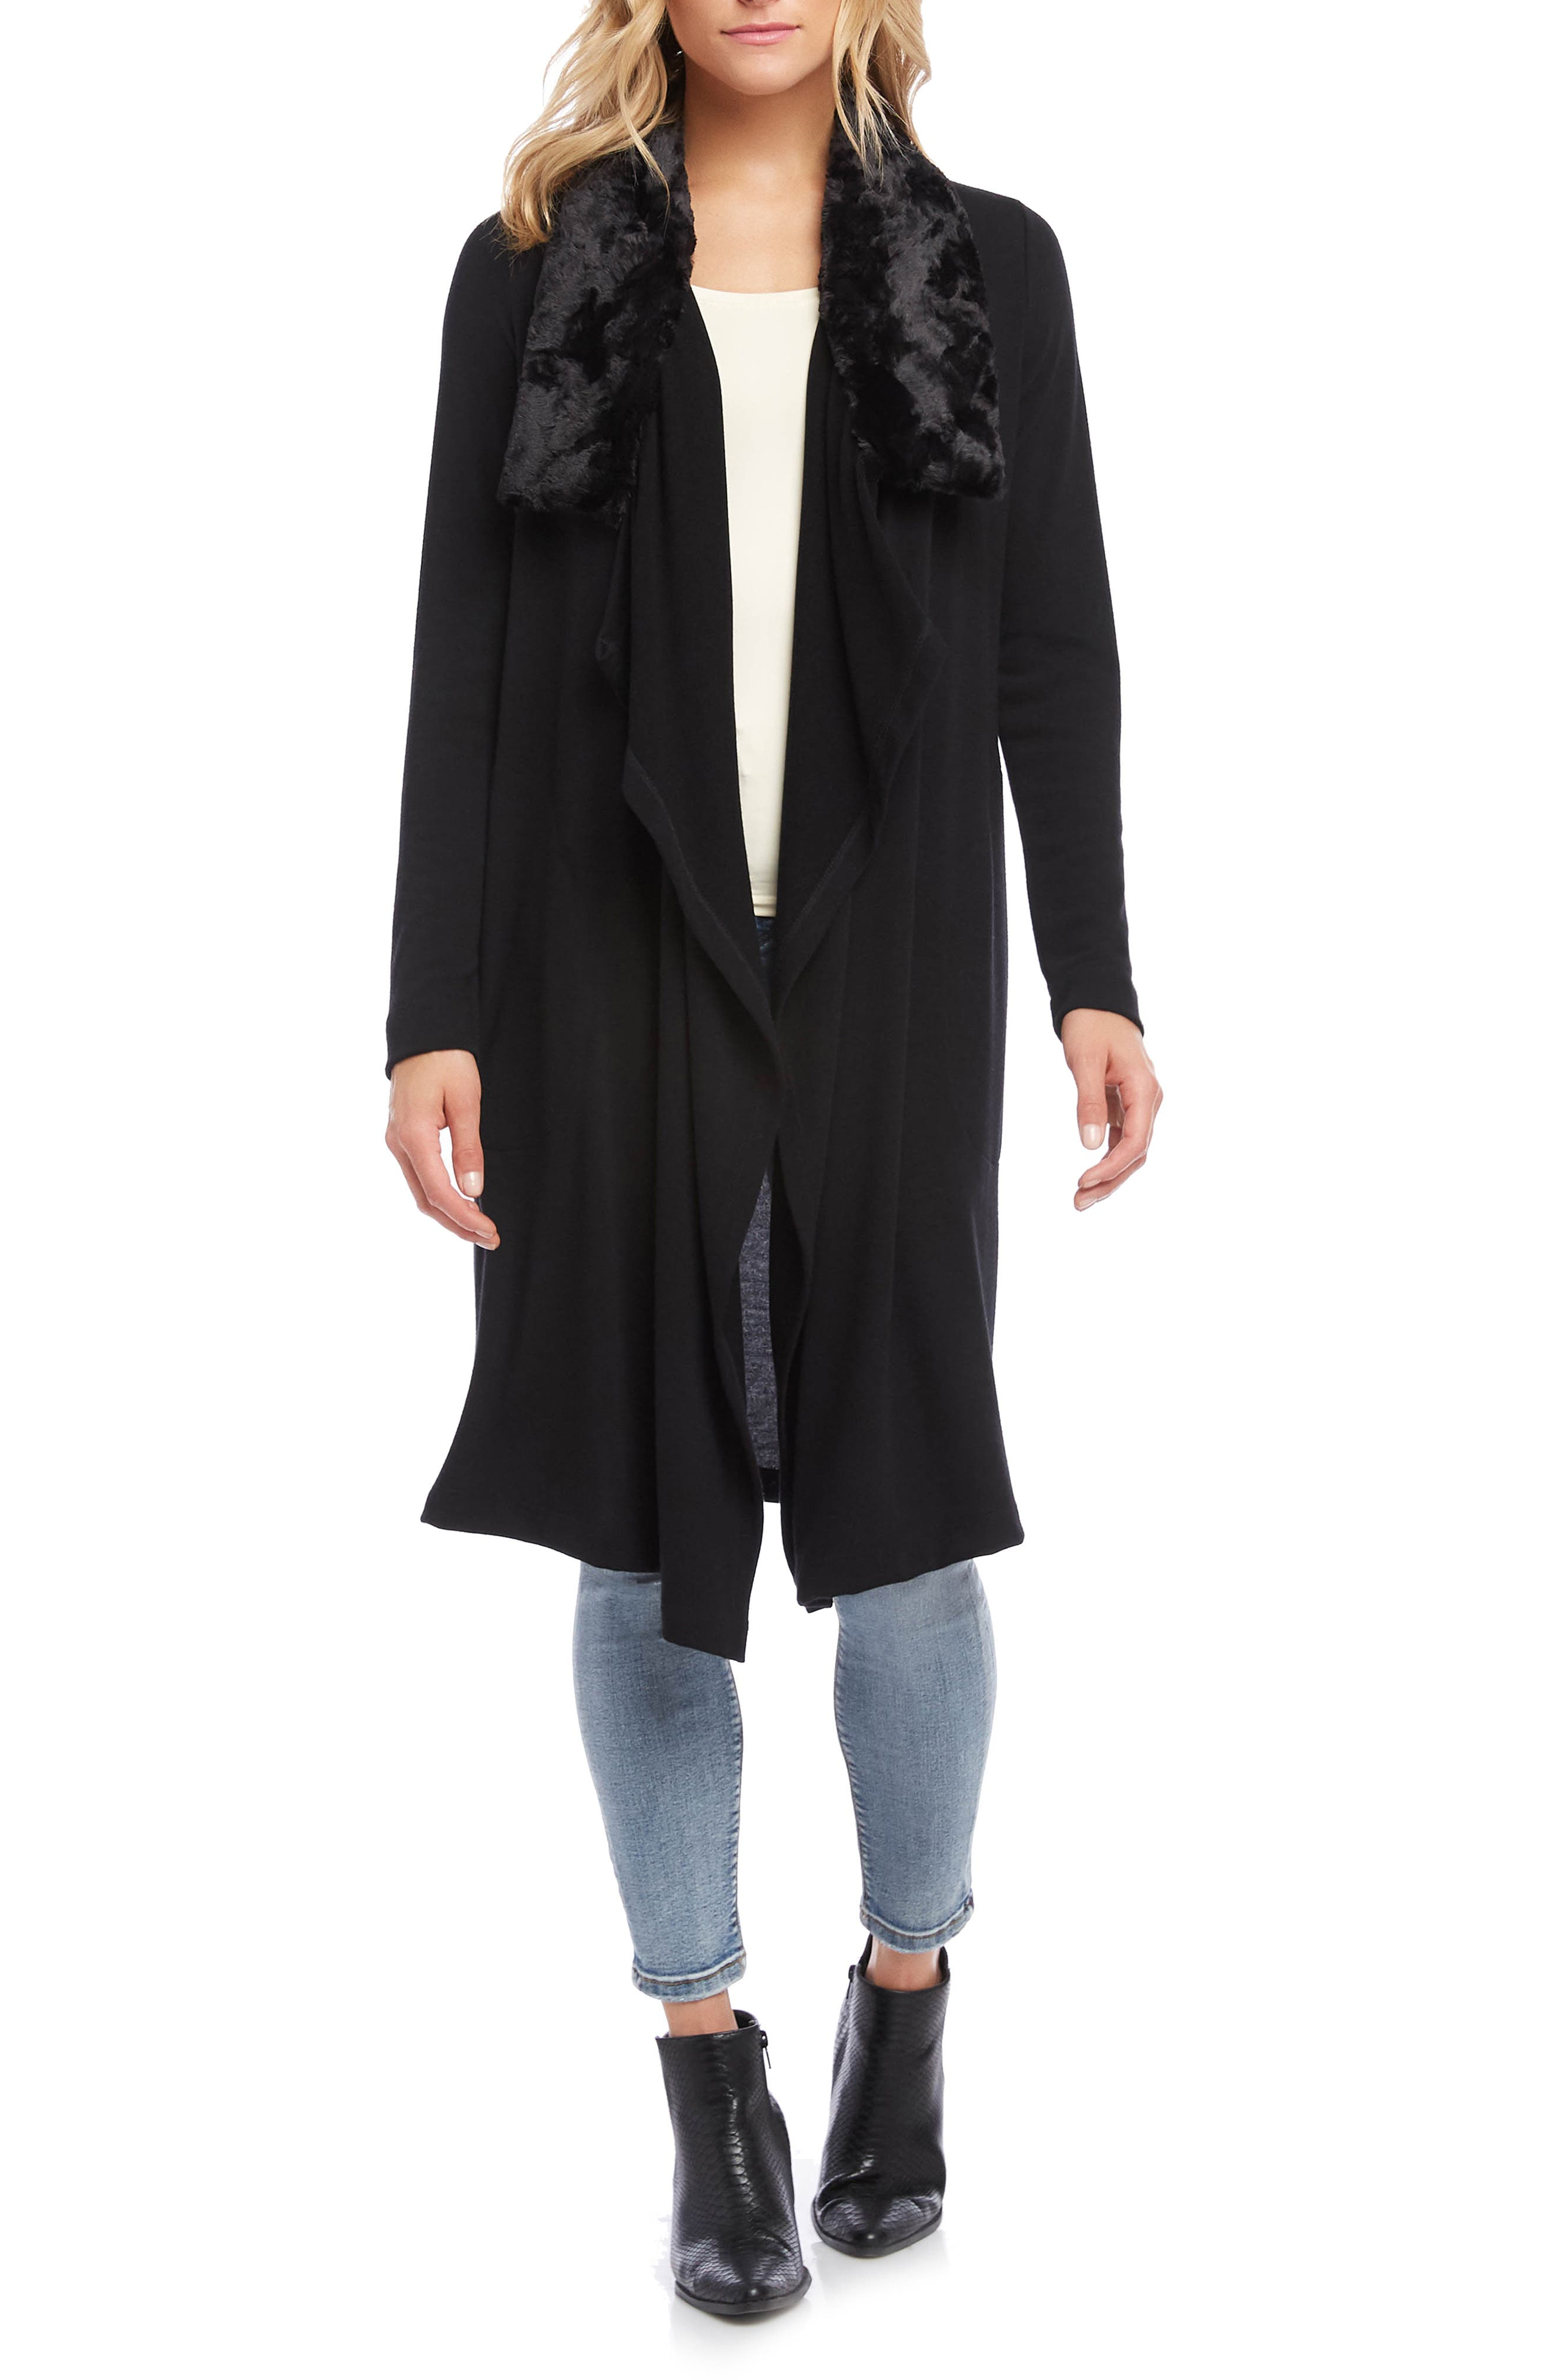 Vintage Coats & Jackets | Retro Coats and Jackets Womens Karen Kane Duster Cardigan With Faux Fur Collar $77.40 AT vintagedancer.com